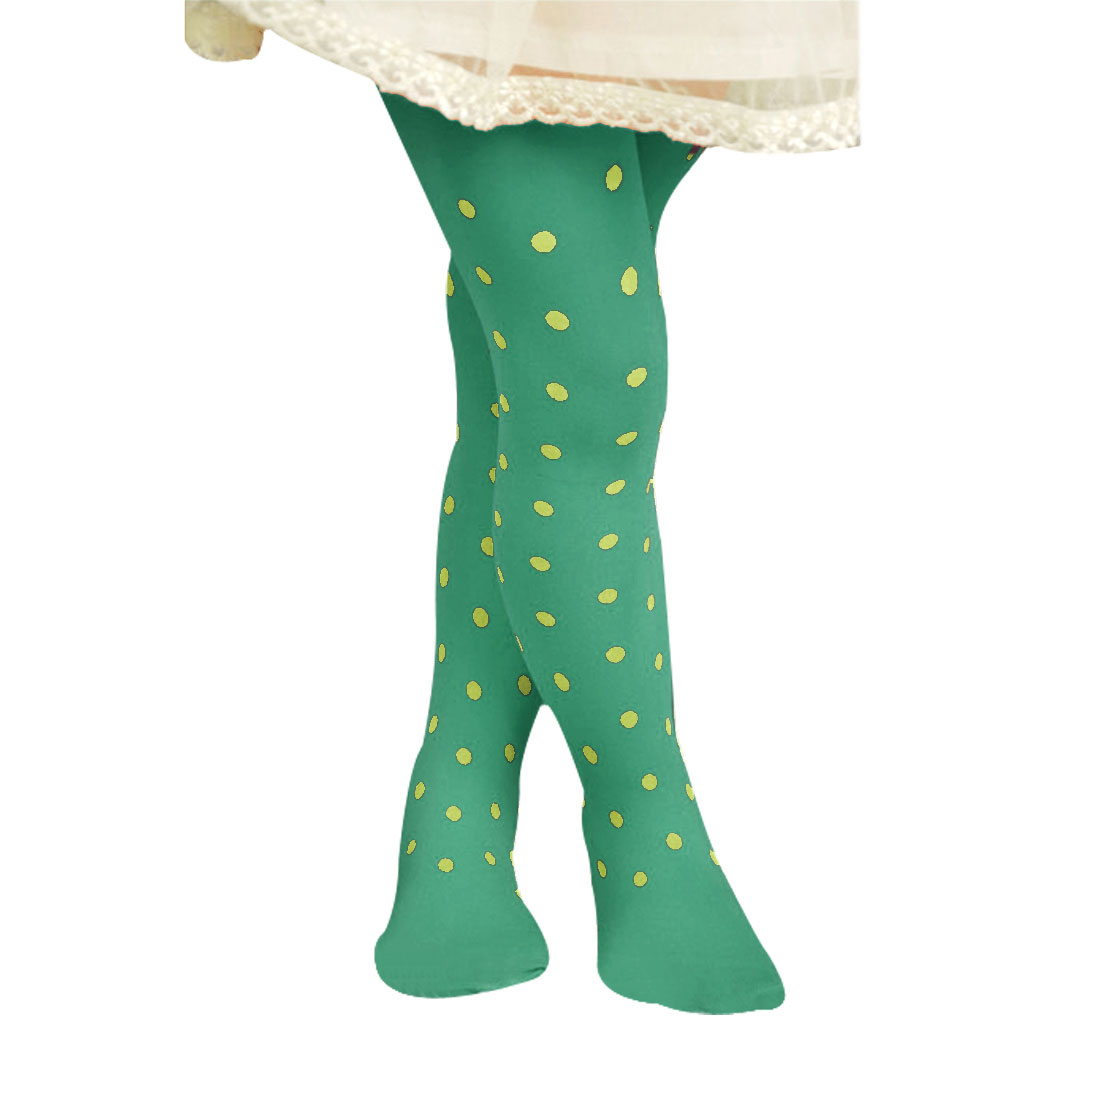 Elastic Waist Dots Pattern Footed Leggings Tights Green M for 4-7T Girls Kids